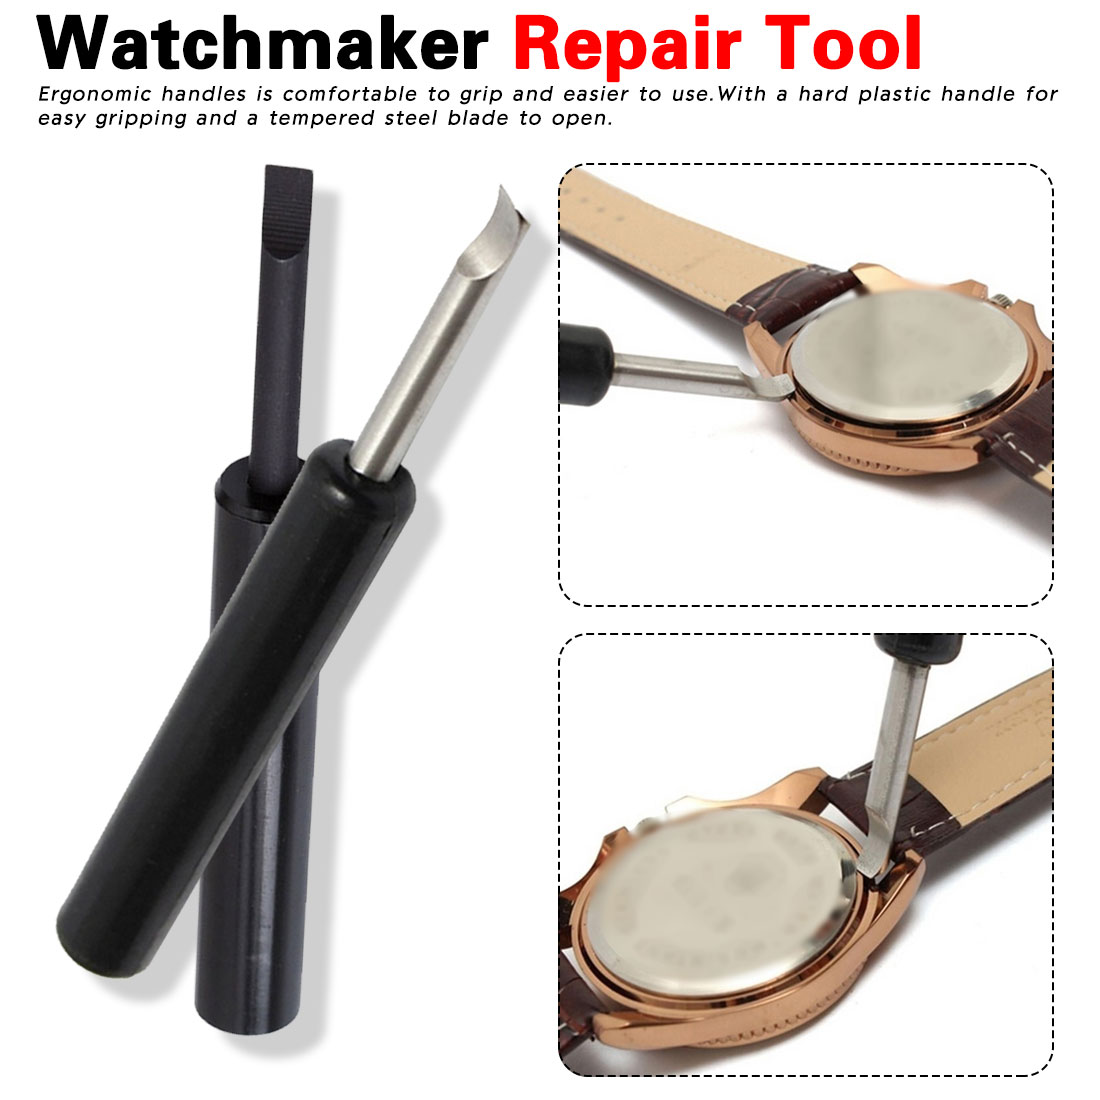 Straight Shank Easier To Open Watch Back Cover Case Opener Screw Wrench Battery Change Watchmaker Repair Tool